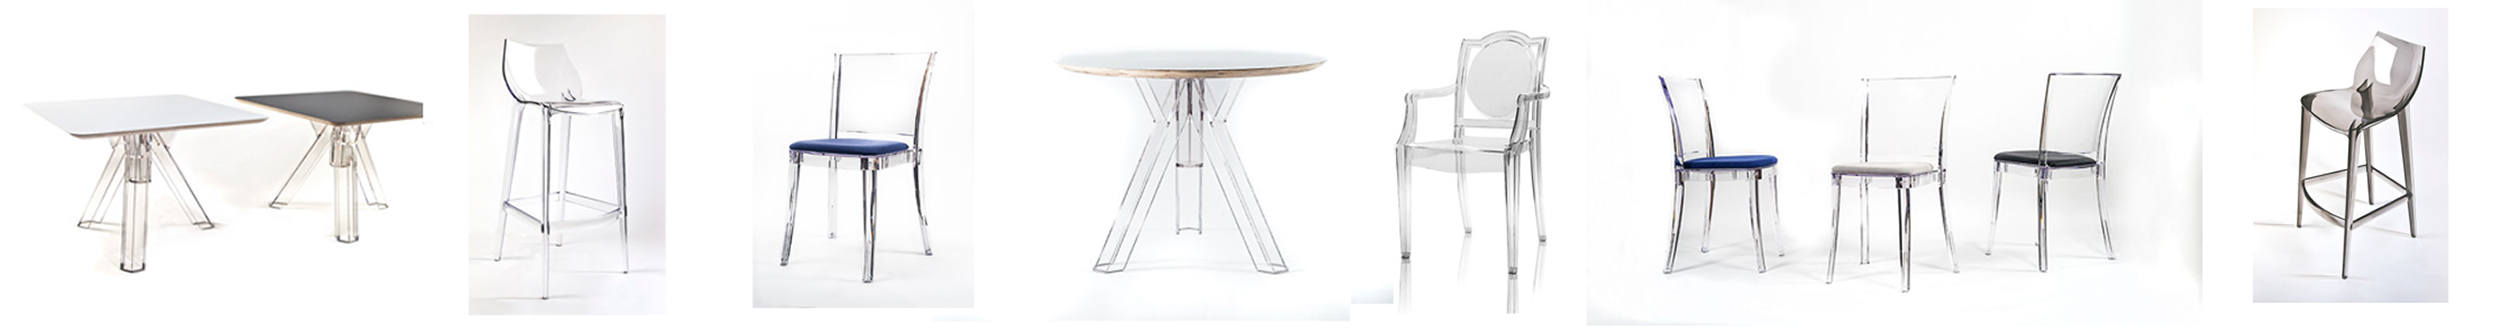 Bellelli Design - Squared tables